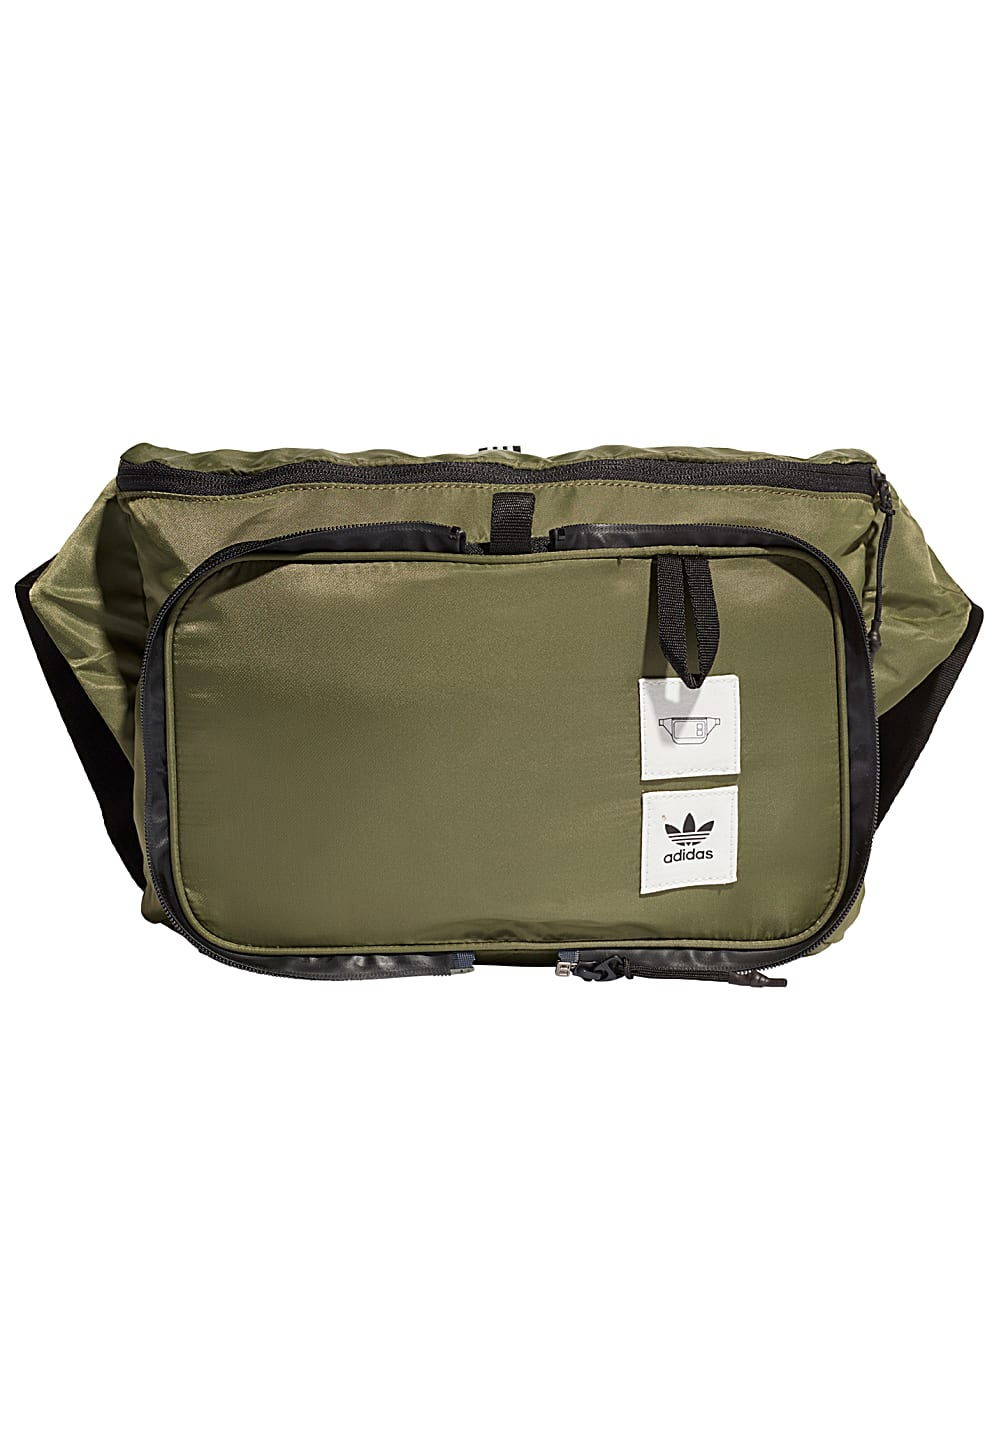 adidas Originals Pack Waistbag - Tasche - Grün